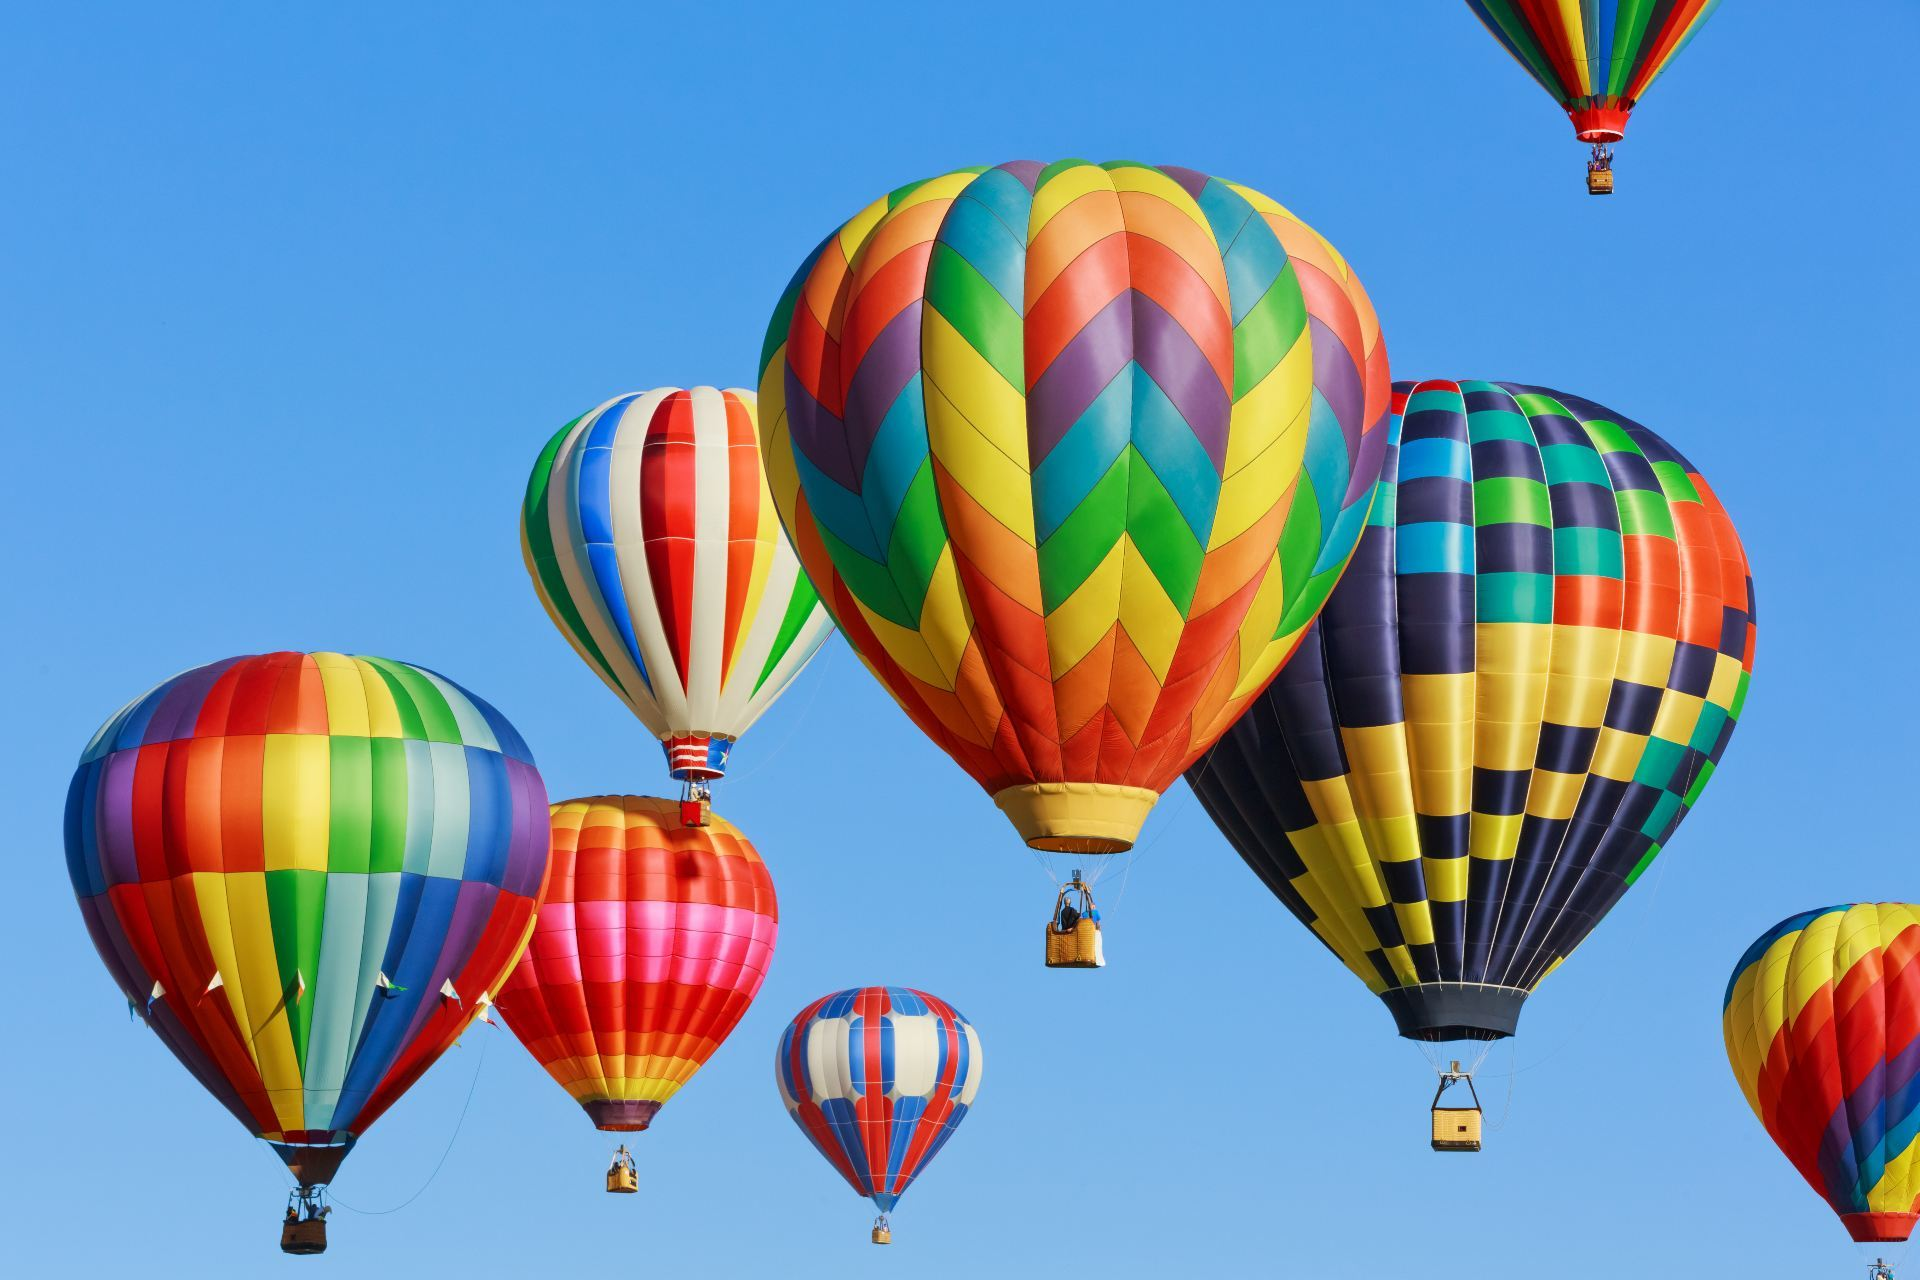 Colorful hot air balloons in the sky | Global2 CampusPress showcase